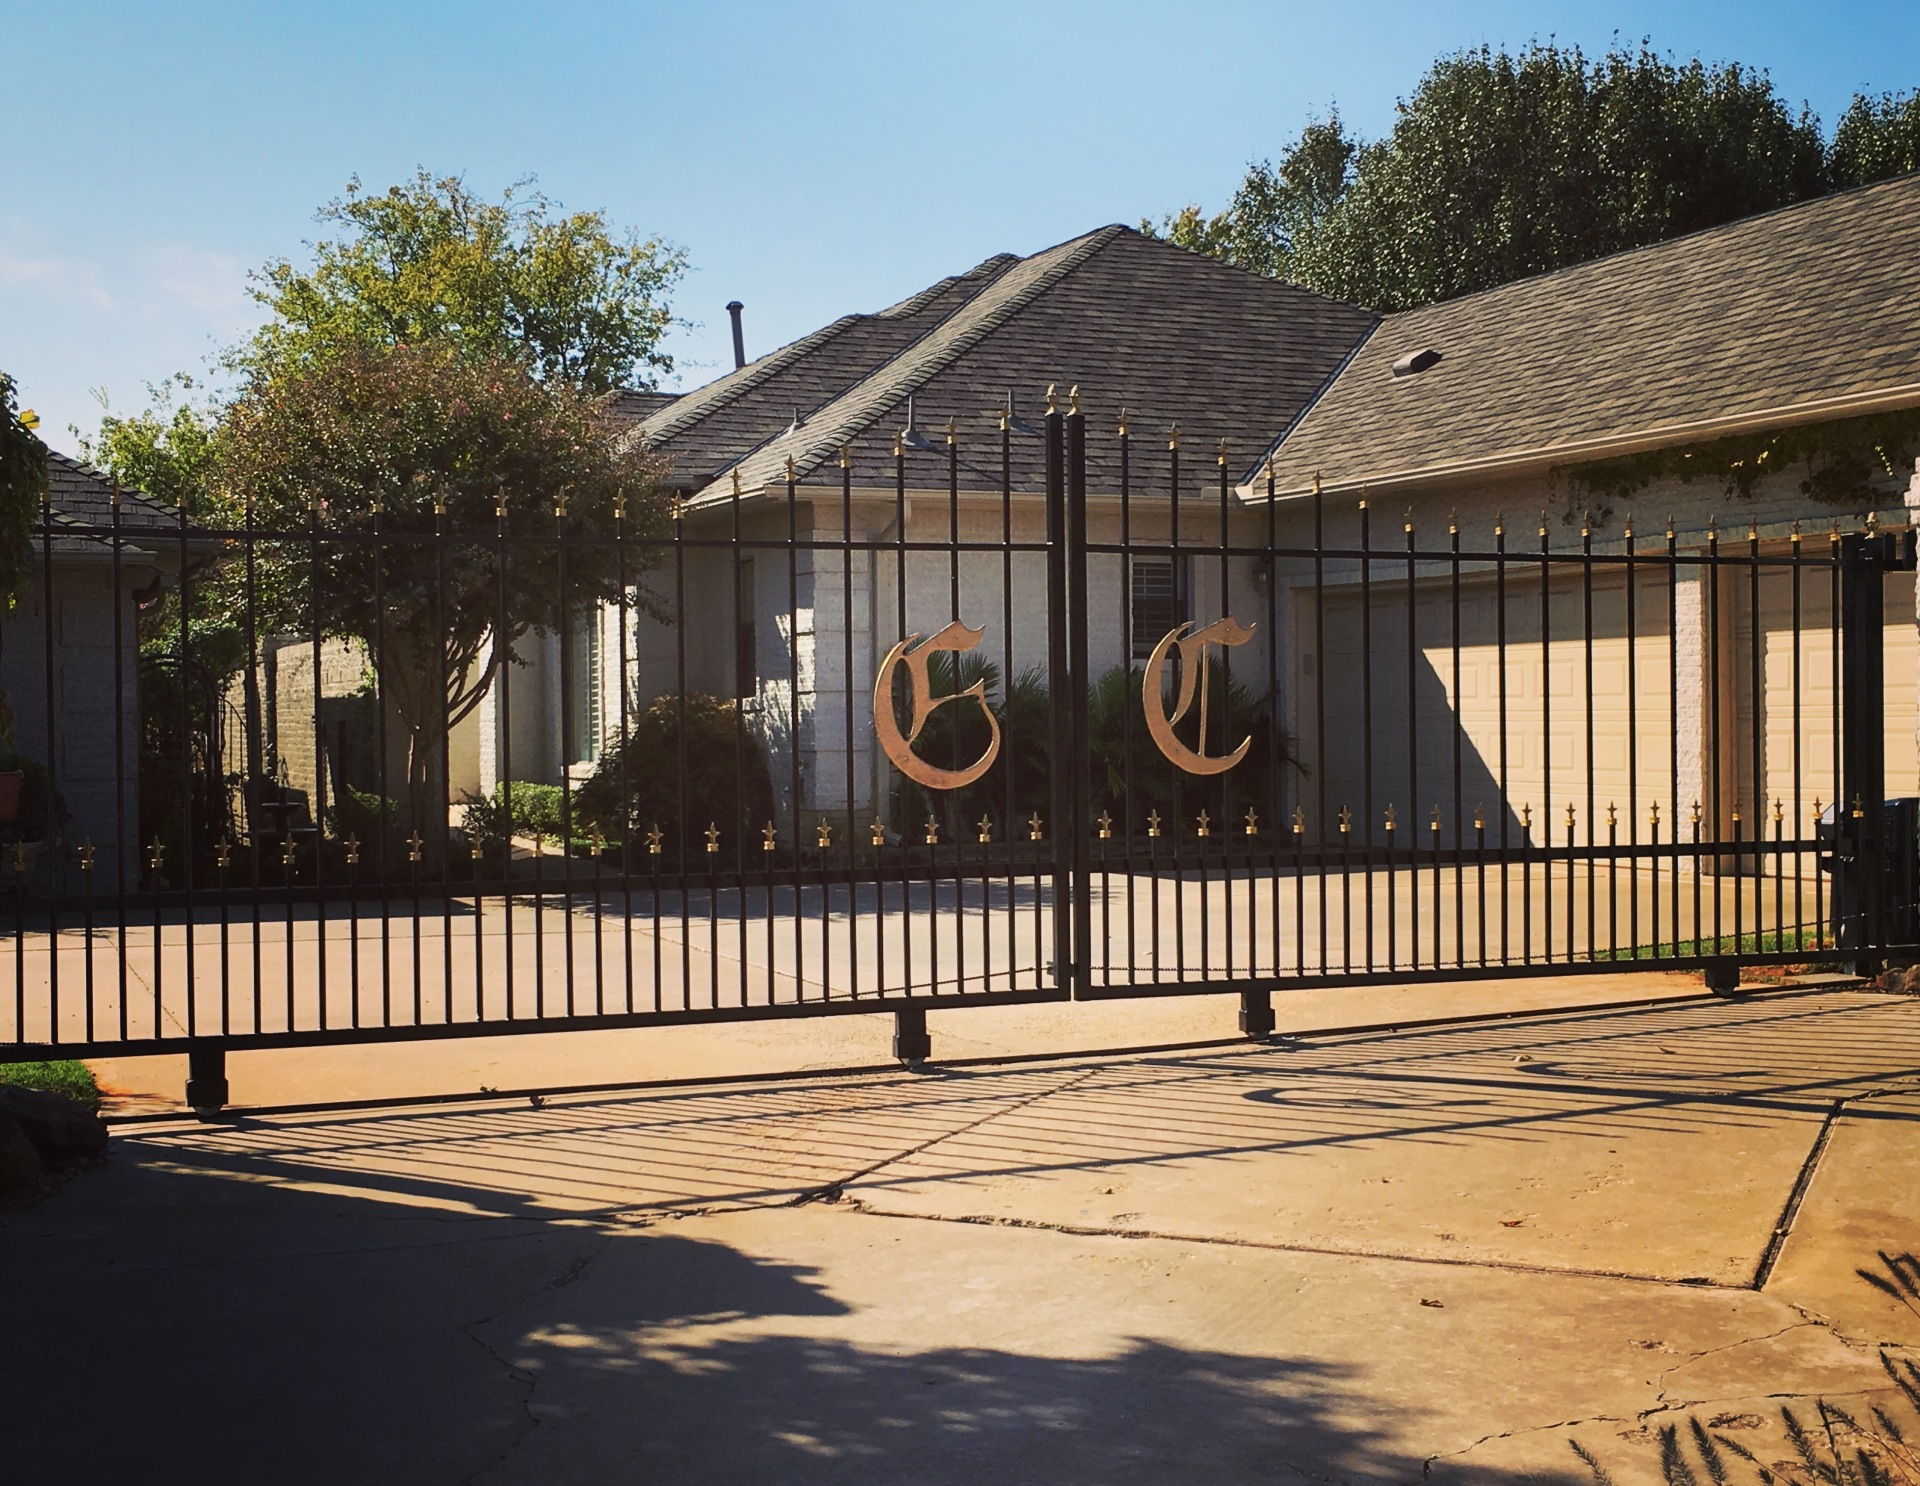 Edmond Oklahoma Fence and Gate Company Security Double Iron Gate with Gate Opener Entry Access System Iphone Wireless Smart Phone Capable Emergency Shut Off Alarm Remote Keyless